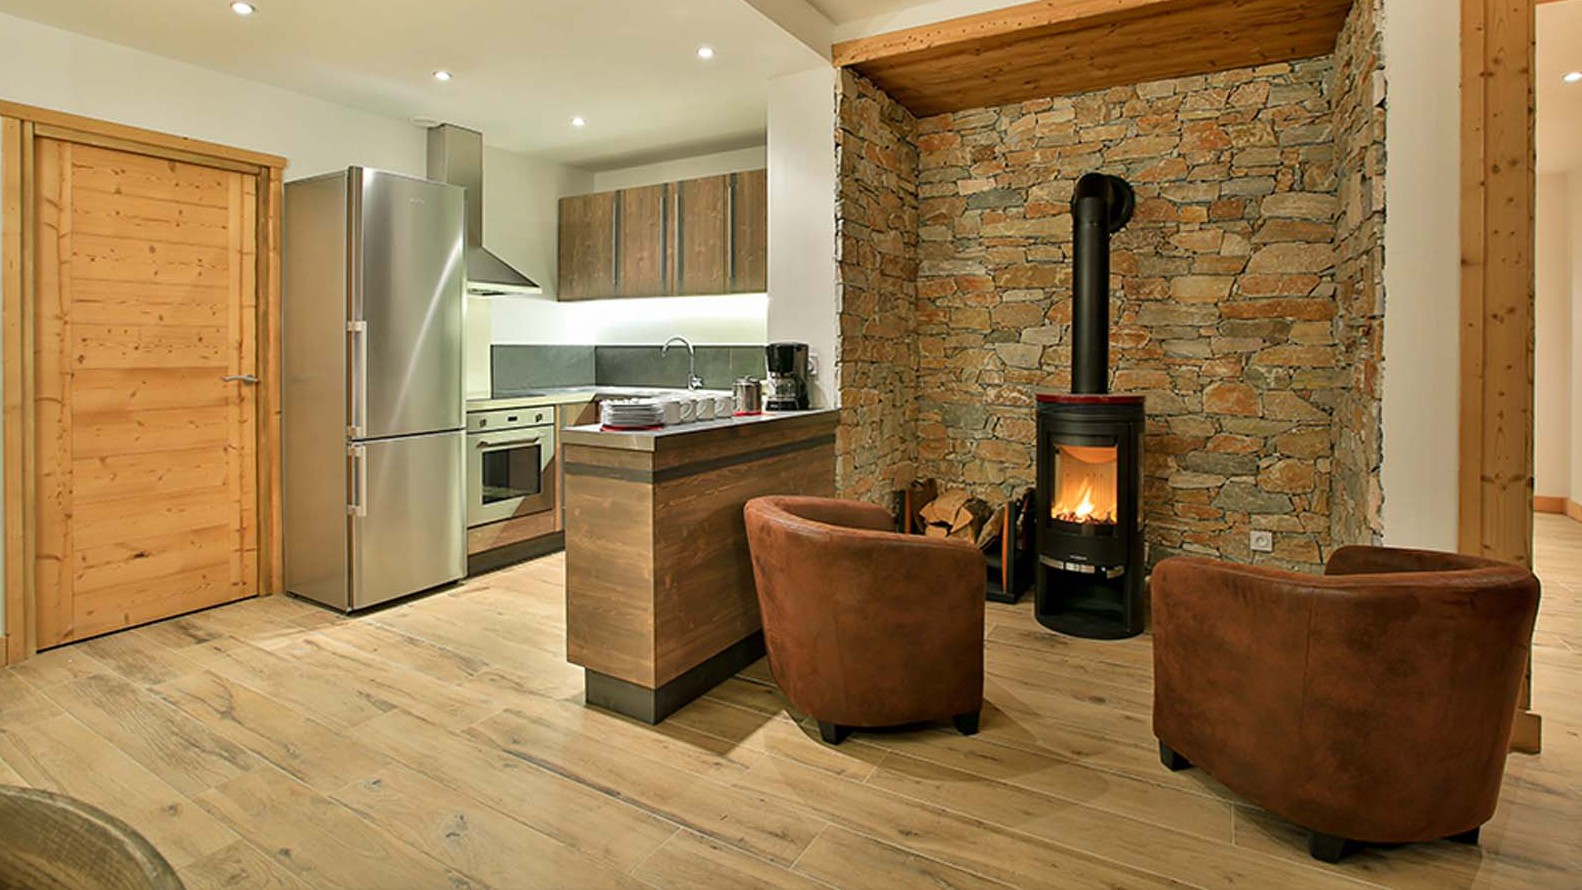 Kitchen Area - Chalet Hellebore - Ski Chalet in La Plagne, France